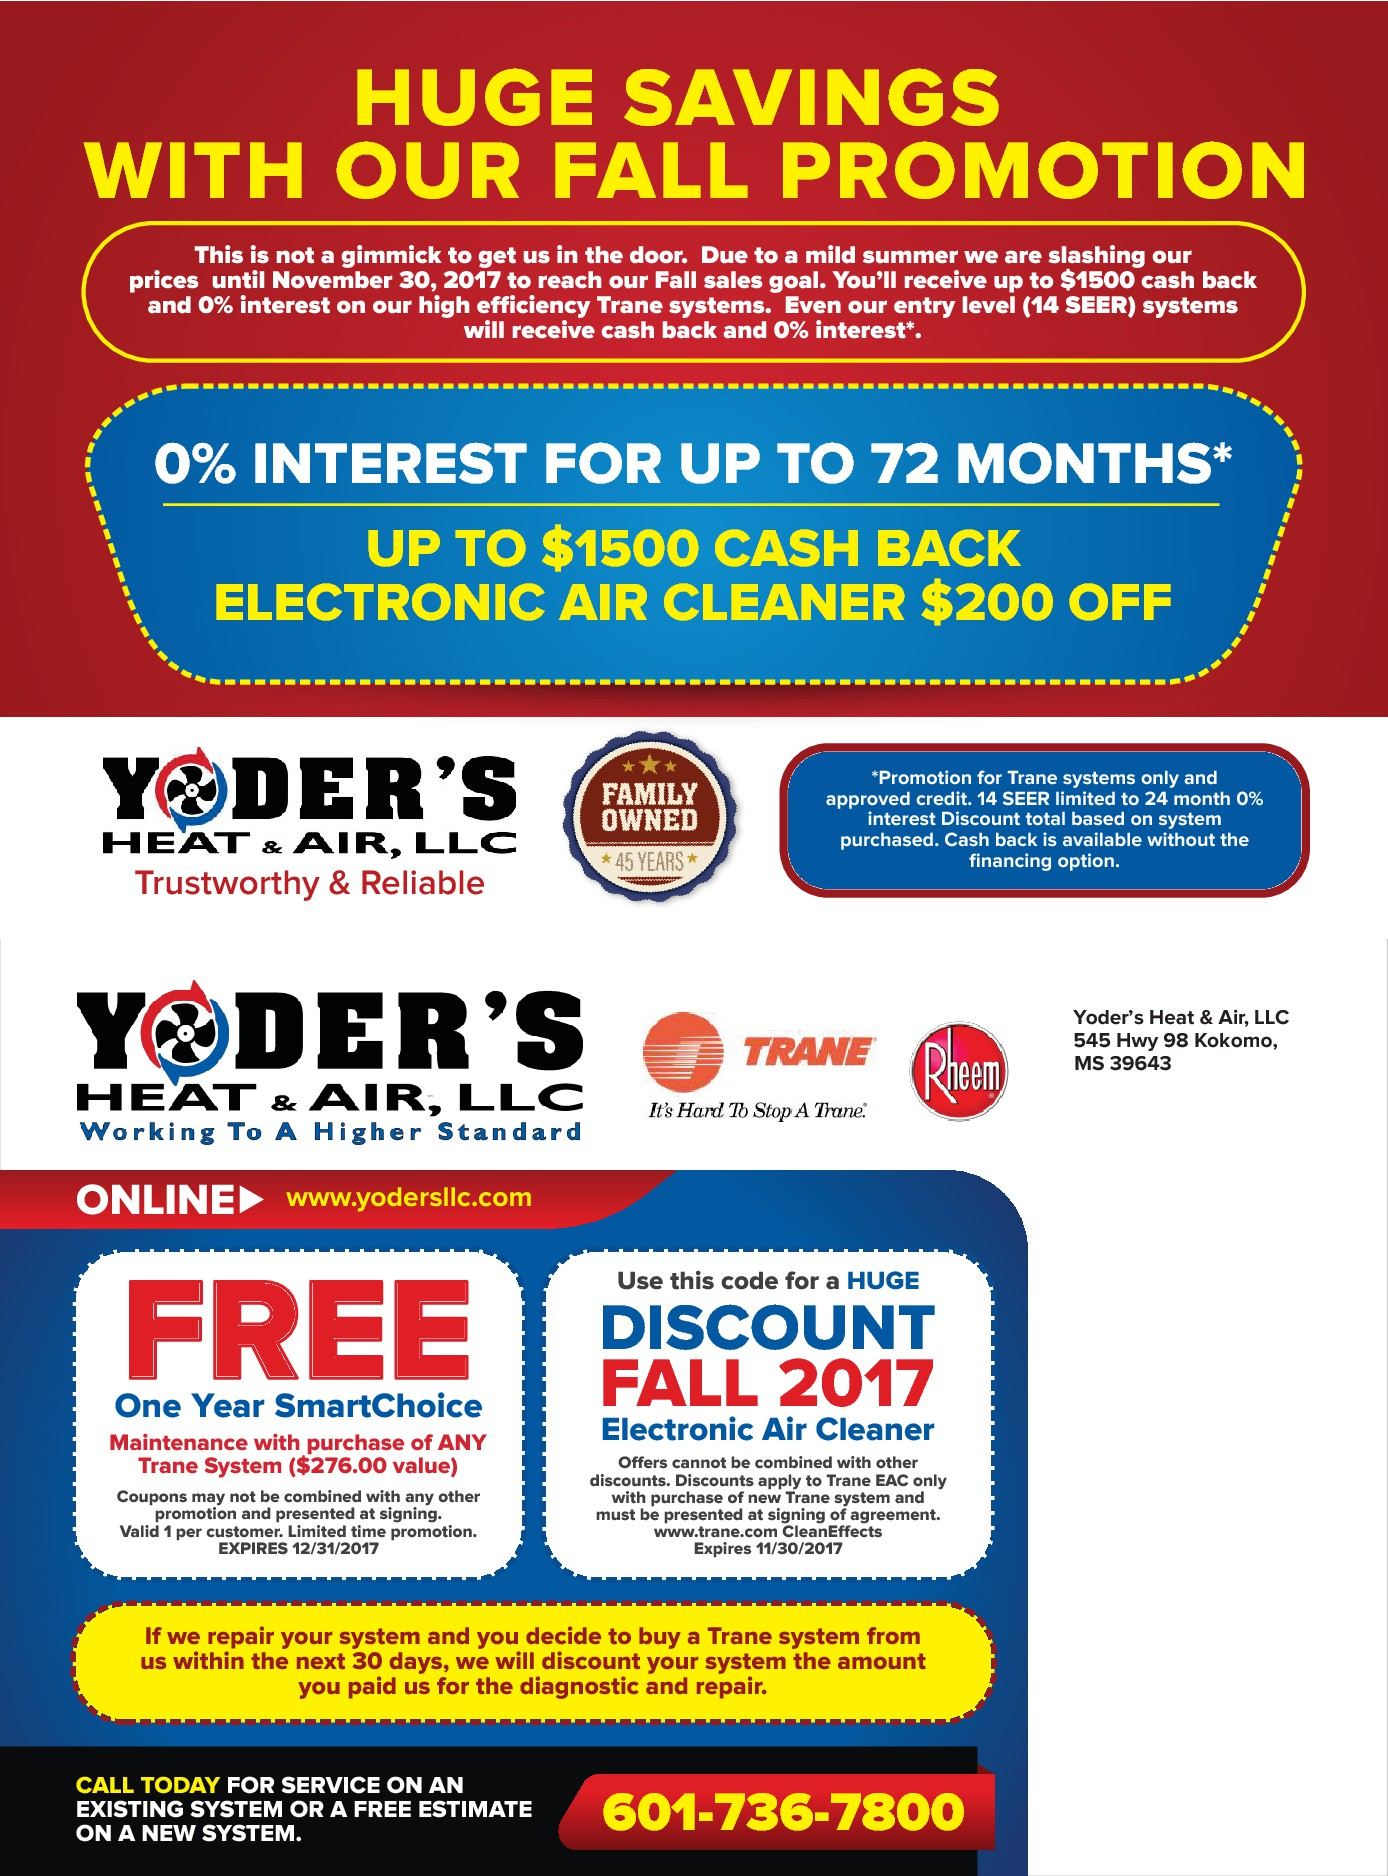 Yoder's Fall Promotion